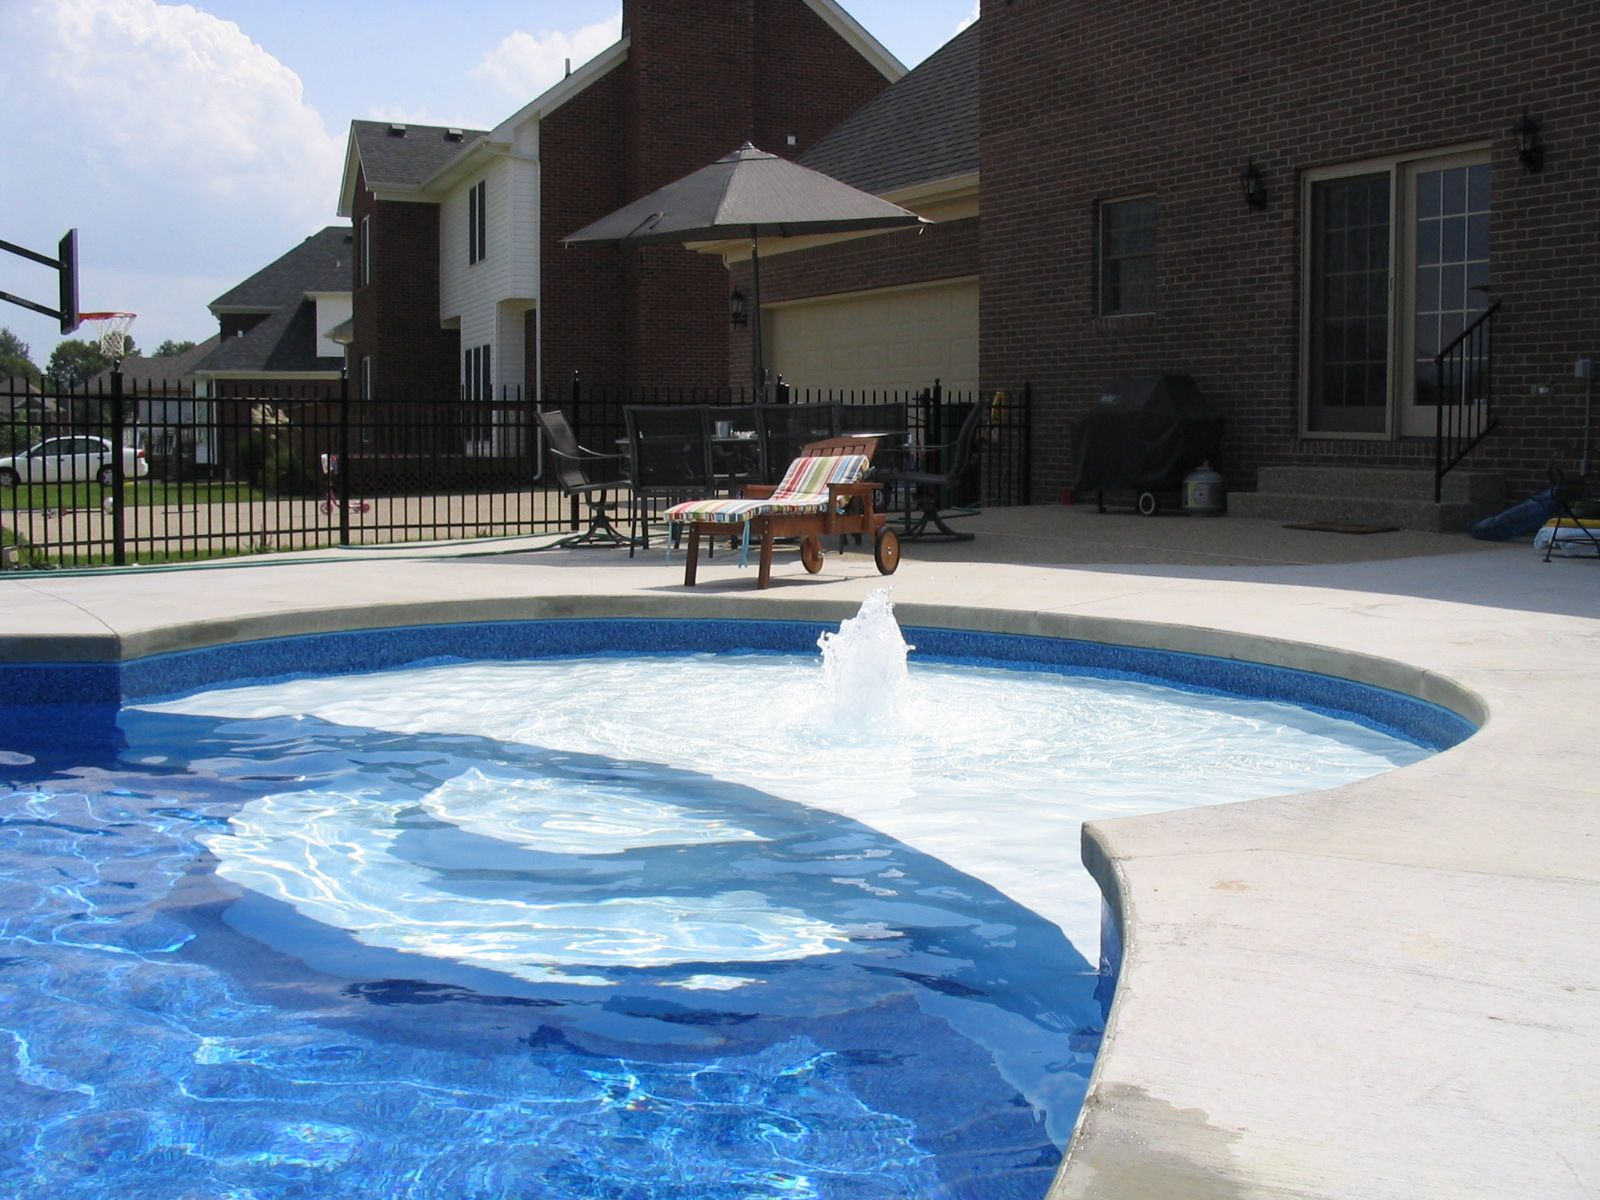 C L Vinyl Liner Pool With A Sundeck And Wedding Cake Steps Vinyl Pool Swimming Pool Designs Swimming Pools Backyard